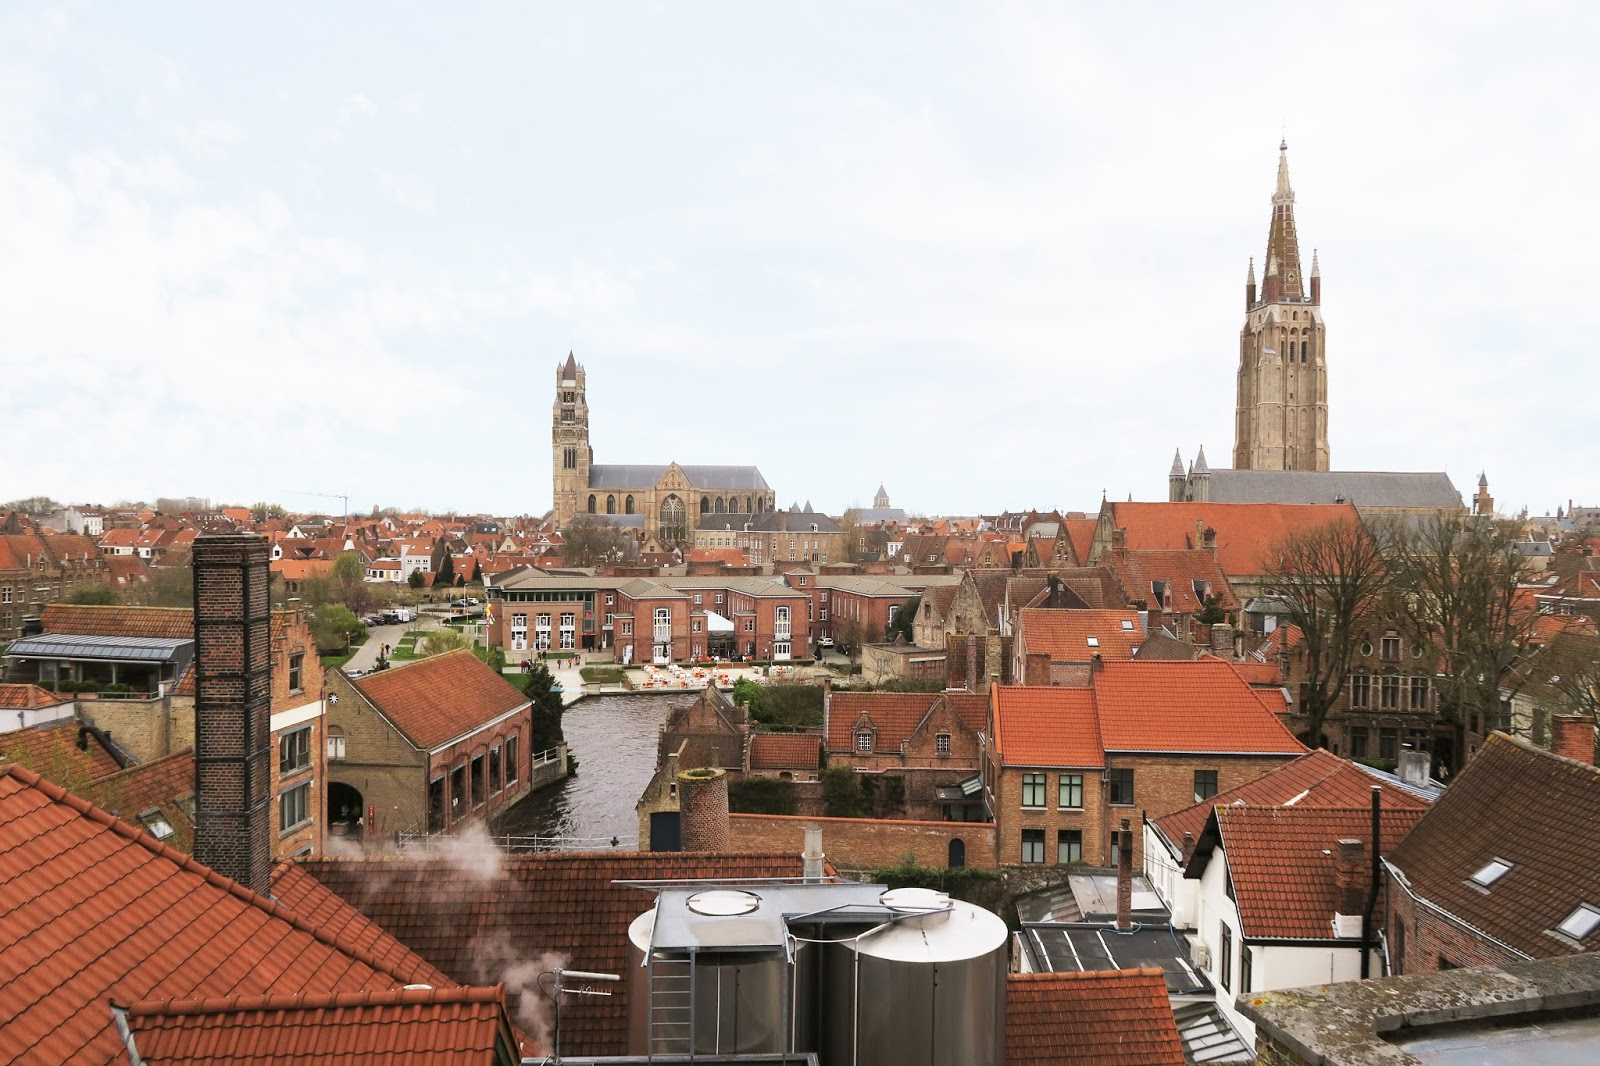 View from De Halve Mann Brewery Bruges. Canals, churches, and homes can be seen across the cityscape.